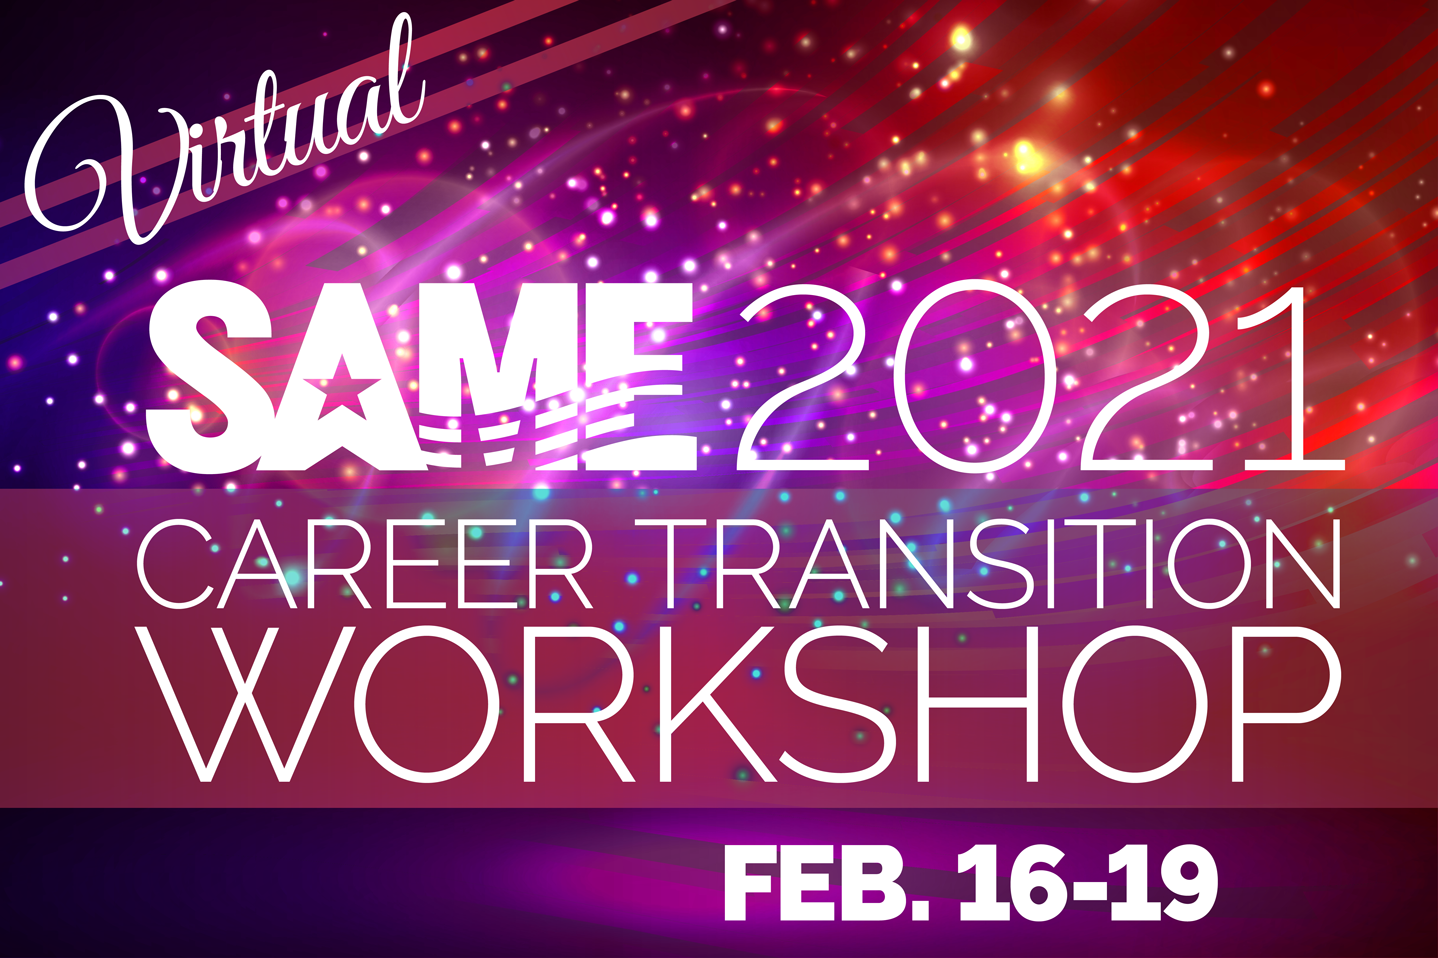 <h2>Virtual Career Transition Workshop 2021</h2>